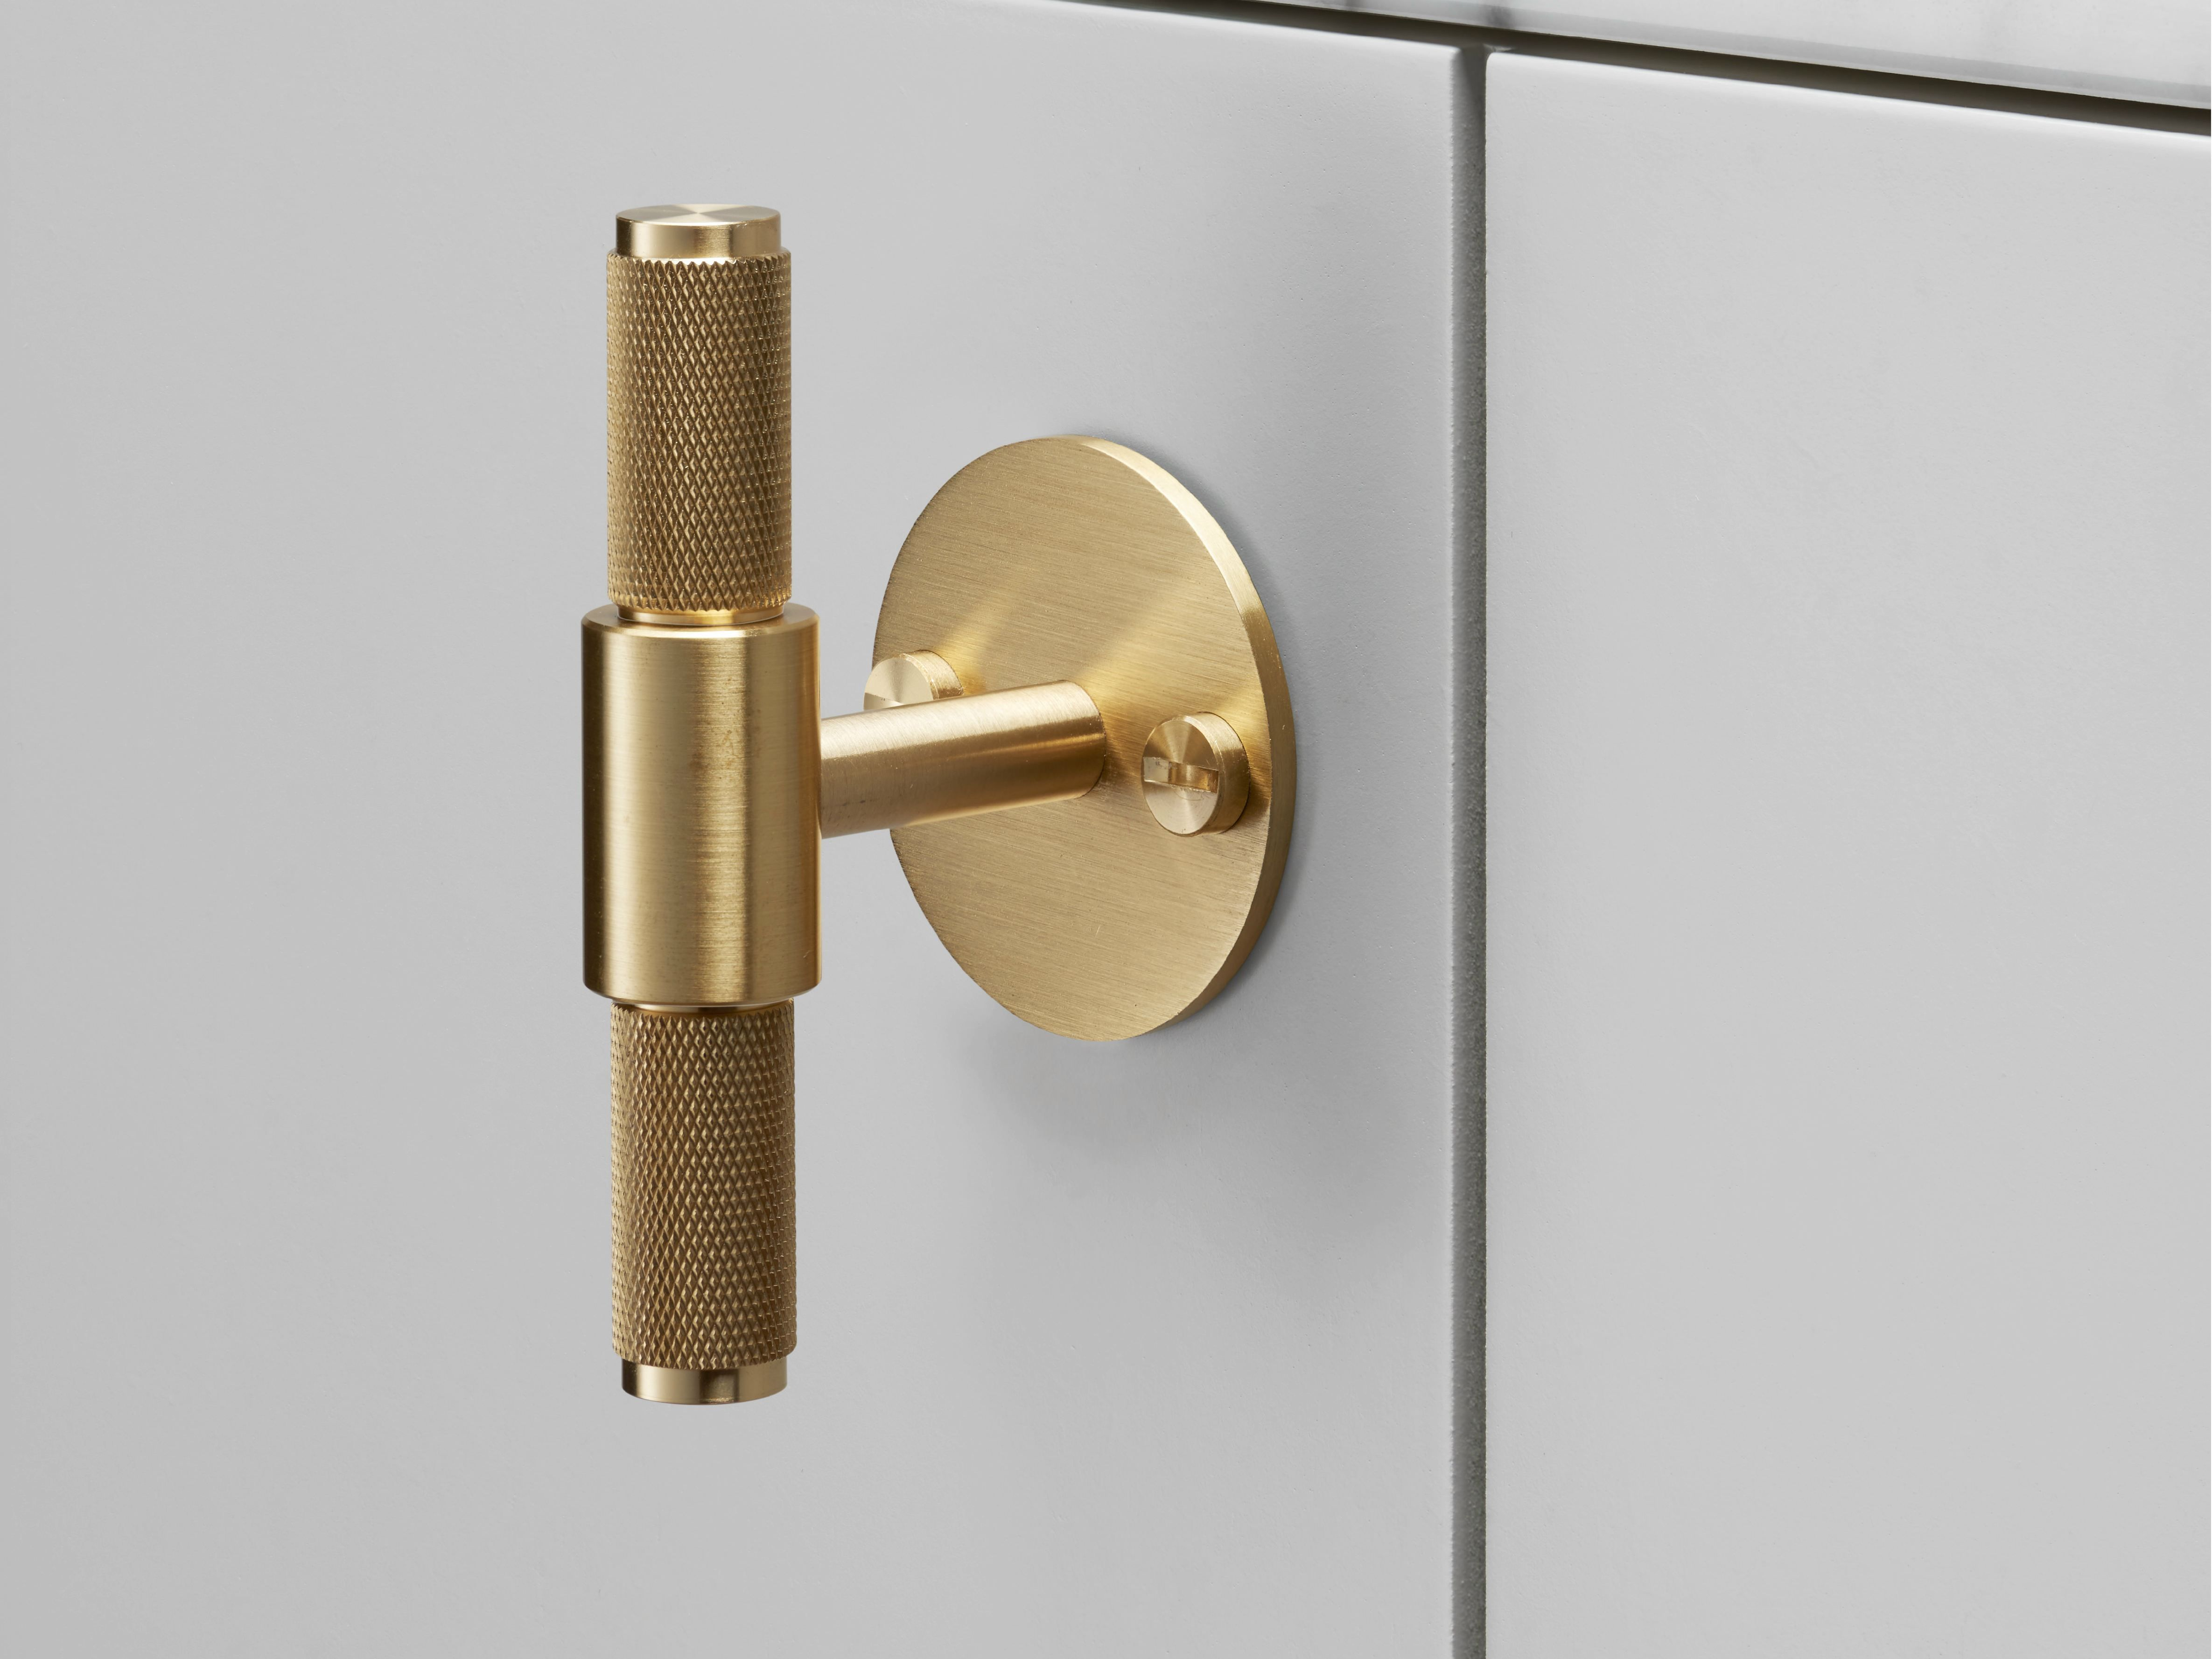 furniture nickel knob brushed cabinet vintage drawer from singapore extraordinary steel kitchen handles pulls pull bronze with and dresser gold uk hardware knobs black store